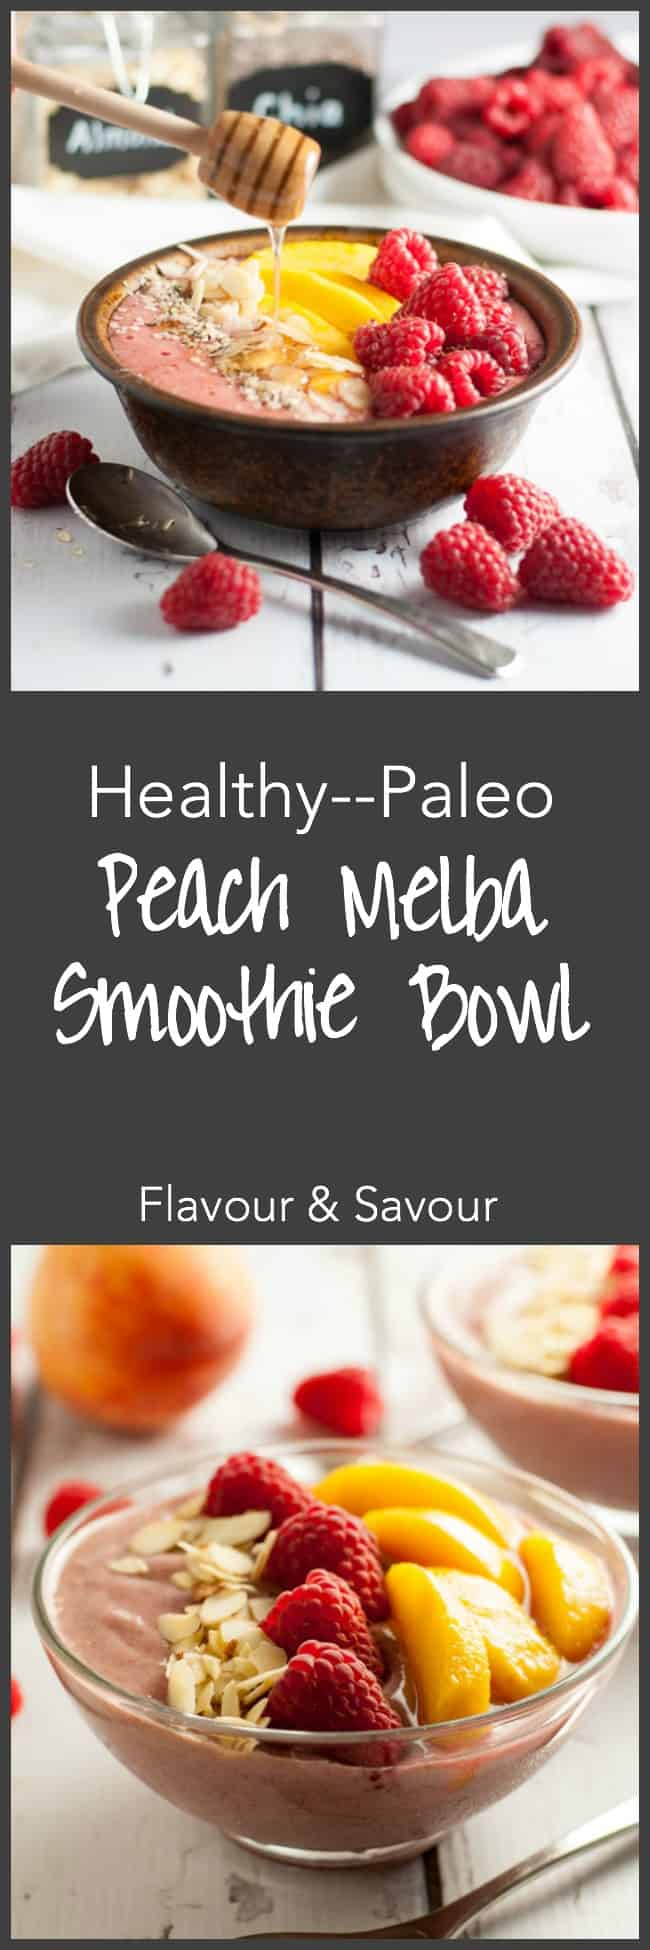 Healthy Peach Melba Smoothie Bowl. A healthy Paleo breakfast! Eat clean with all the benefits of a smoothie, but with the added benefits of fun toppings! |www.flavourandsavour.com